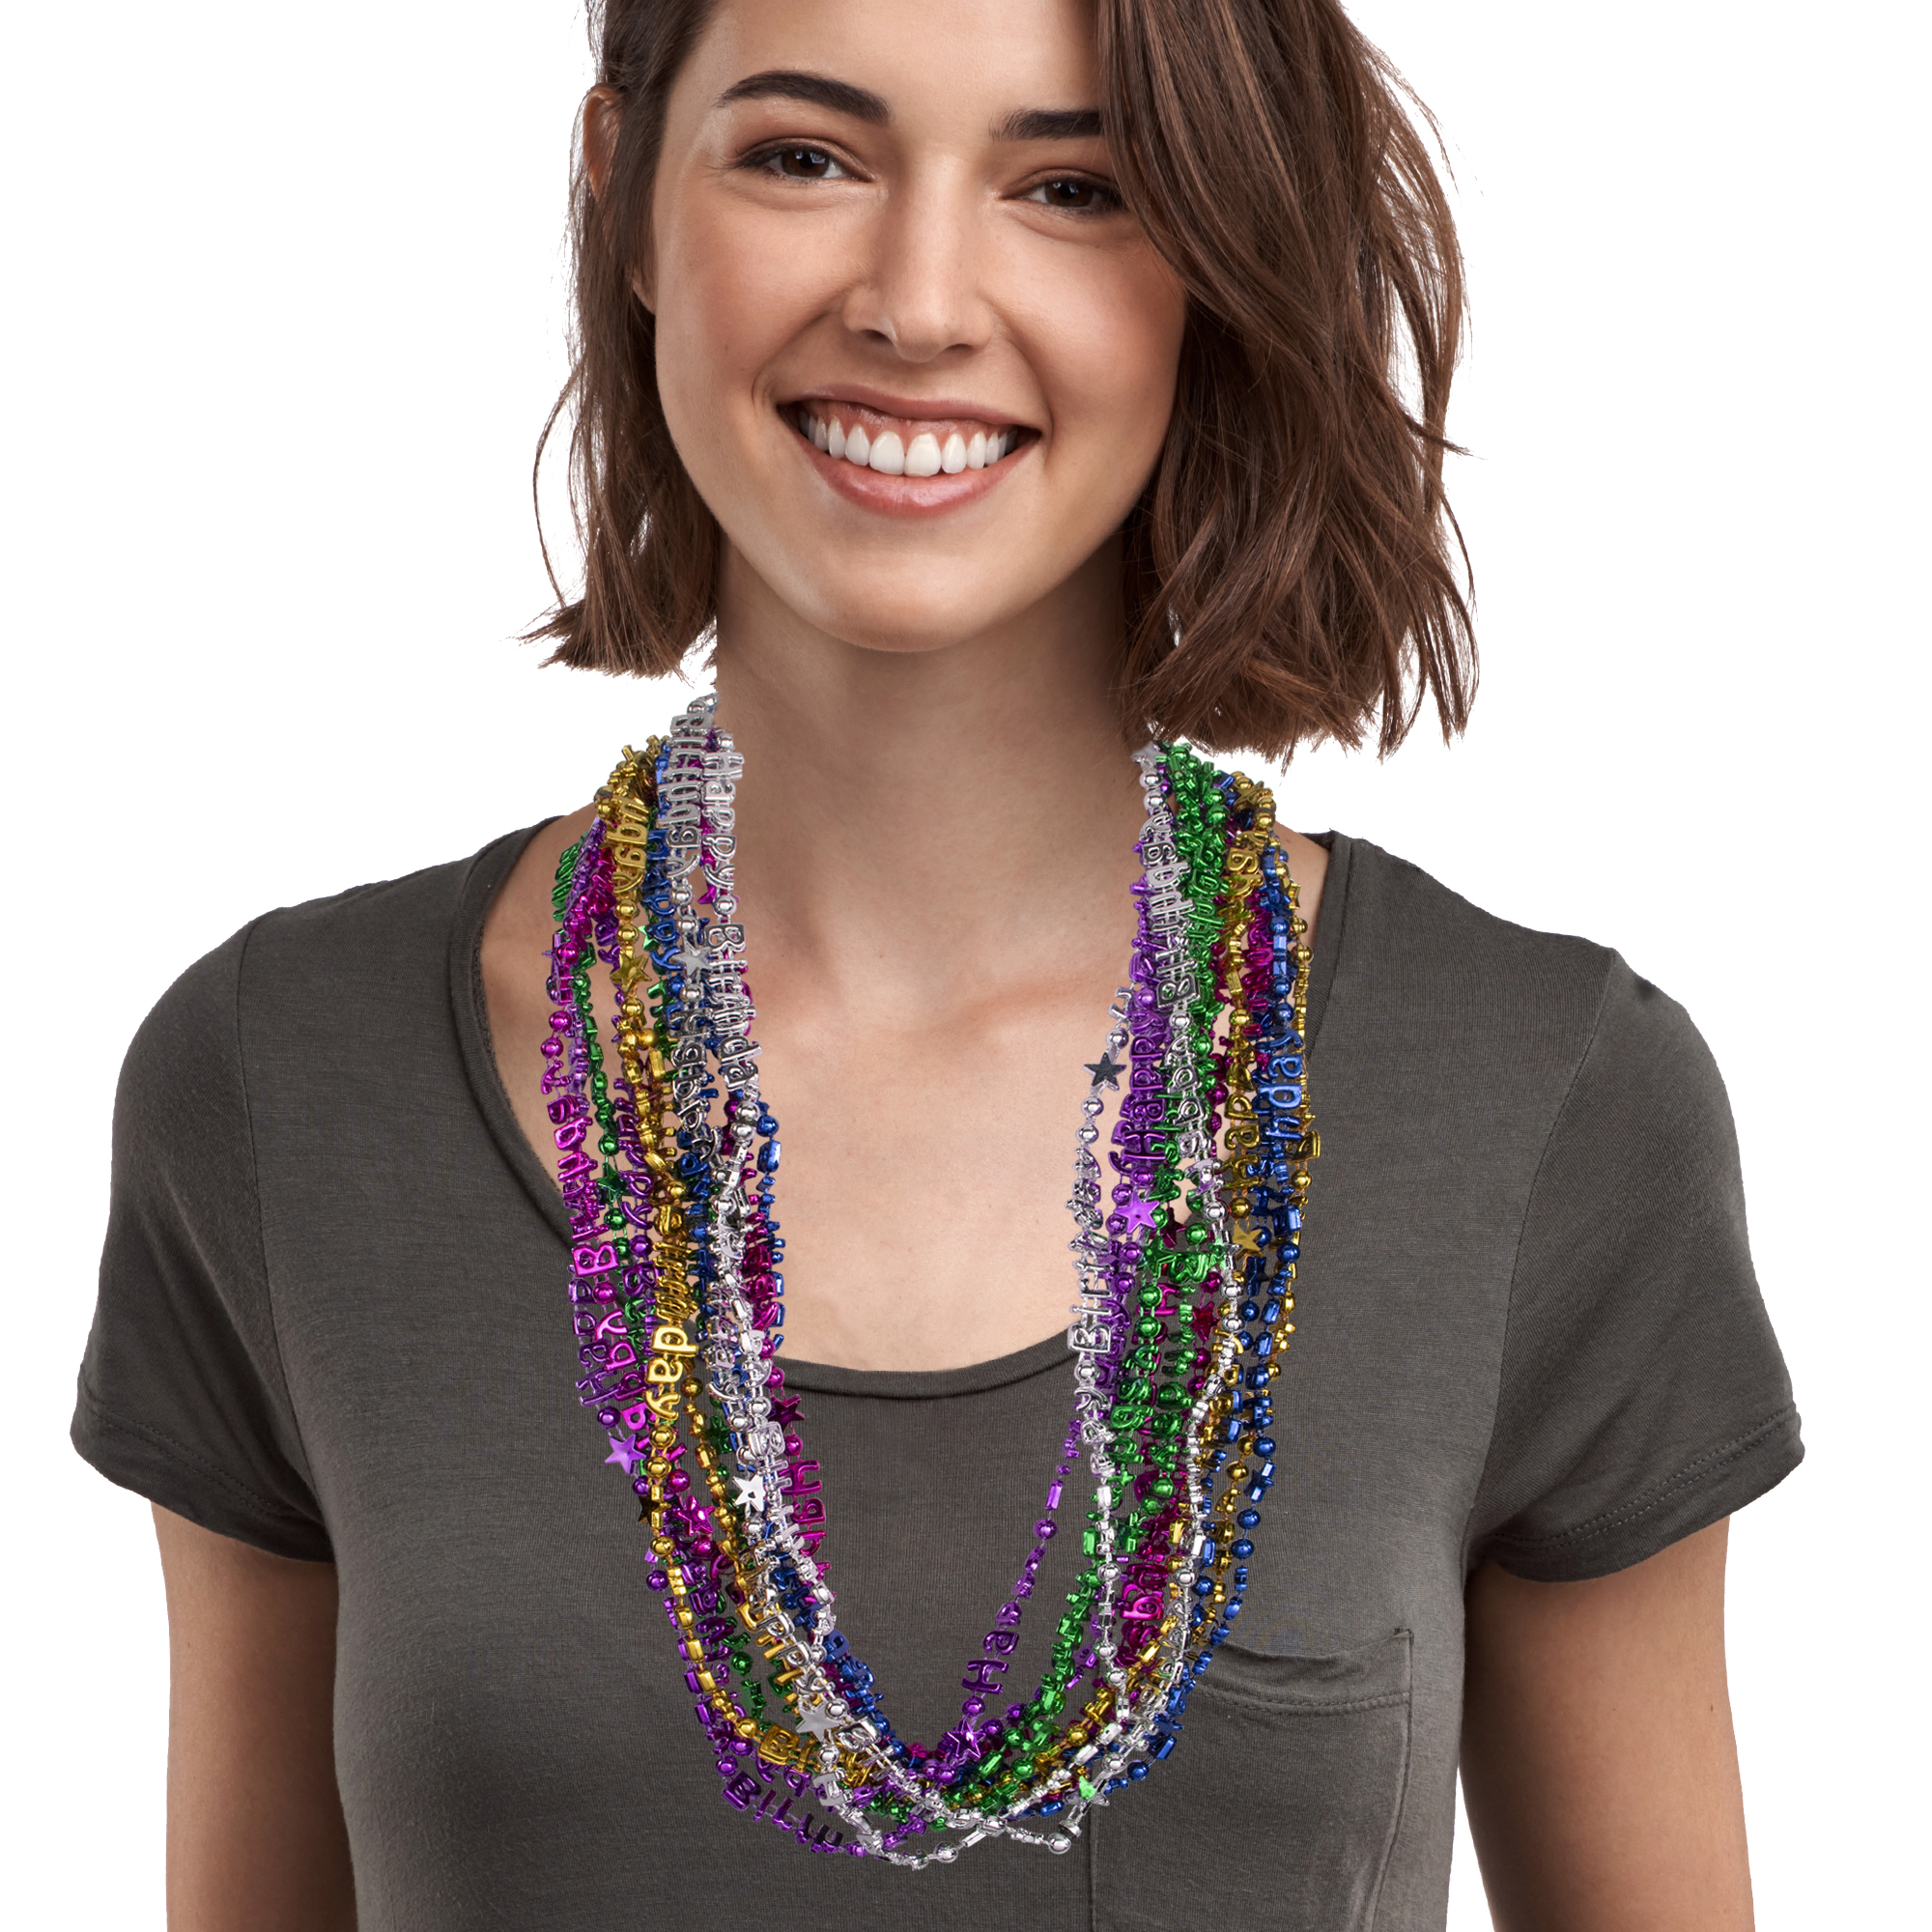 33 INCH HAPPY BIRTHDAY BEAD NECKLACE